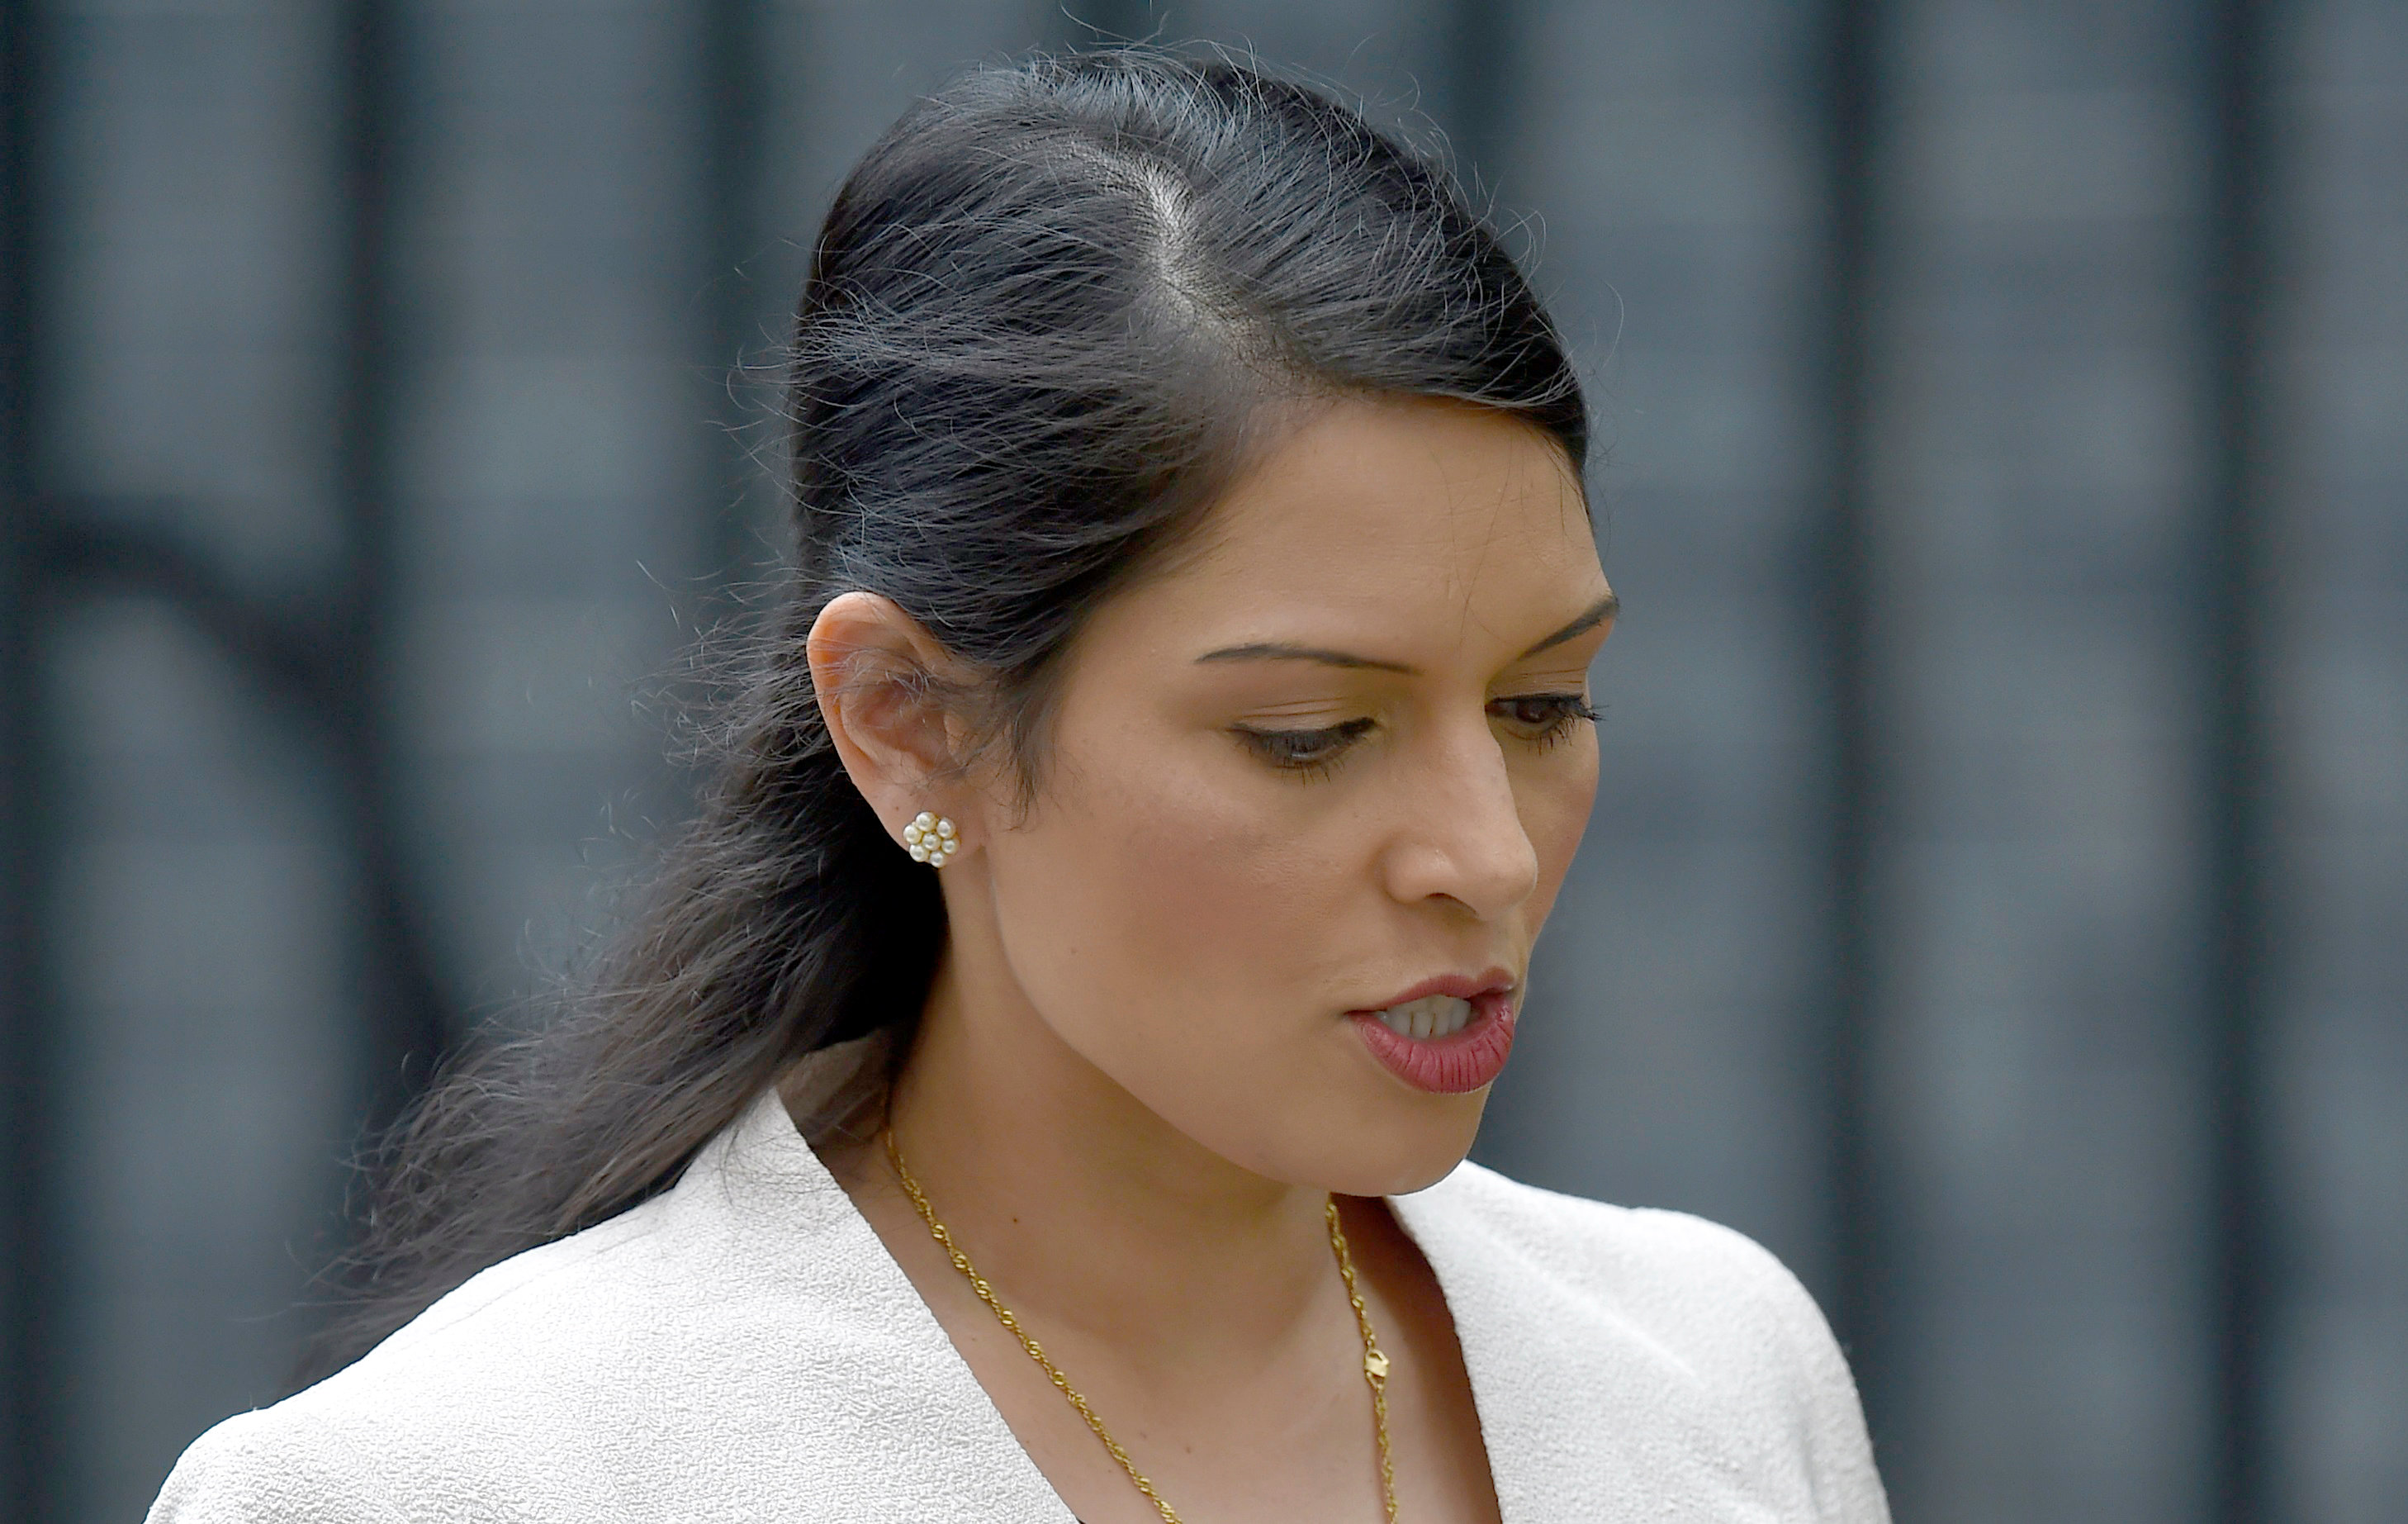 In New Test for Theresa May, Priti Patel Resigns